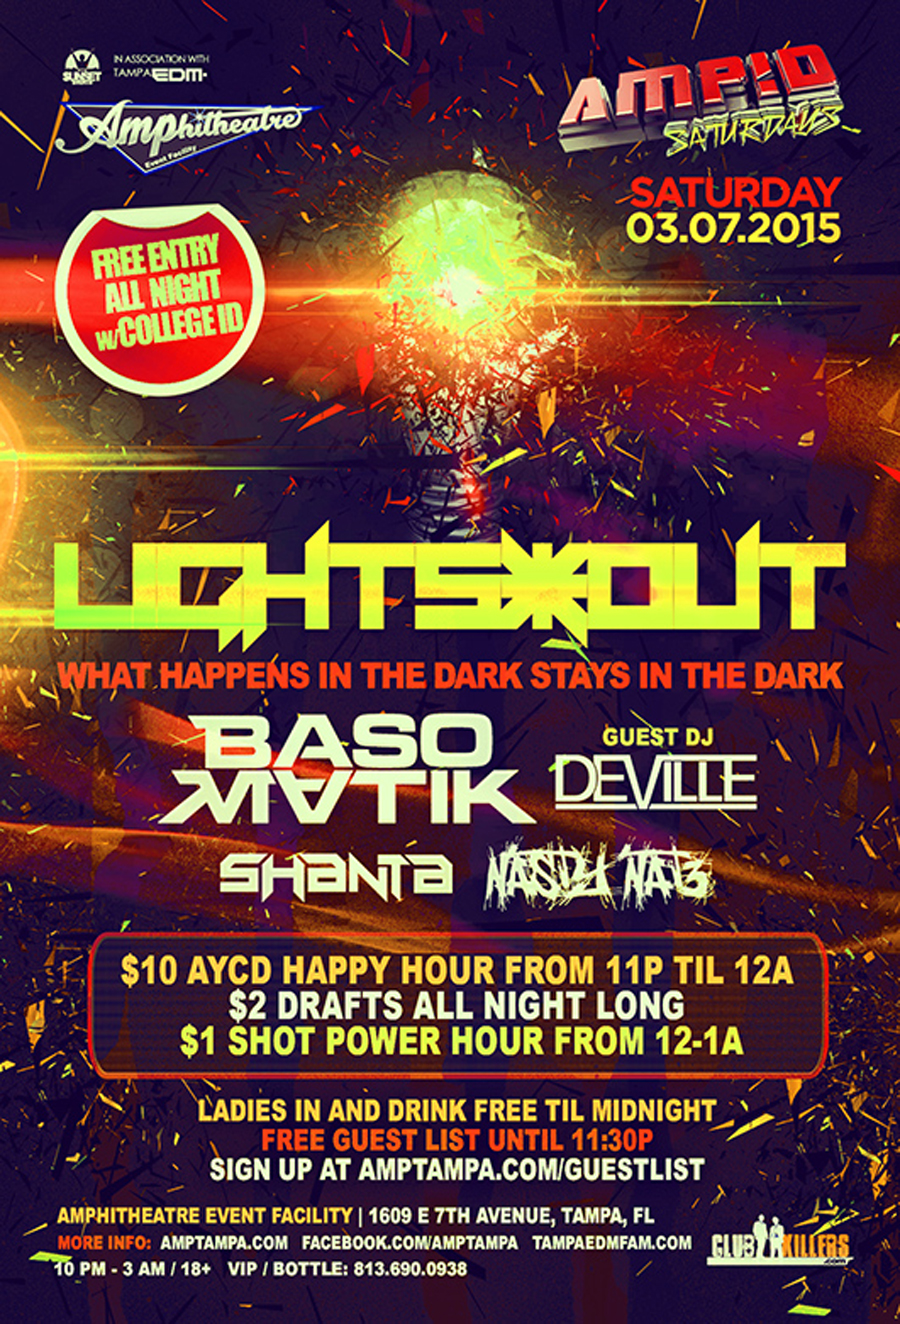 LIGHTS*OUT w/ Special Guest DJ DEVILLE at AMP!D